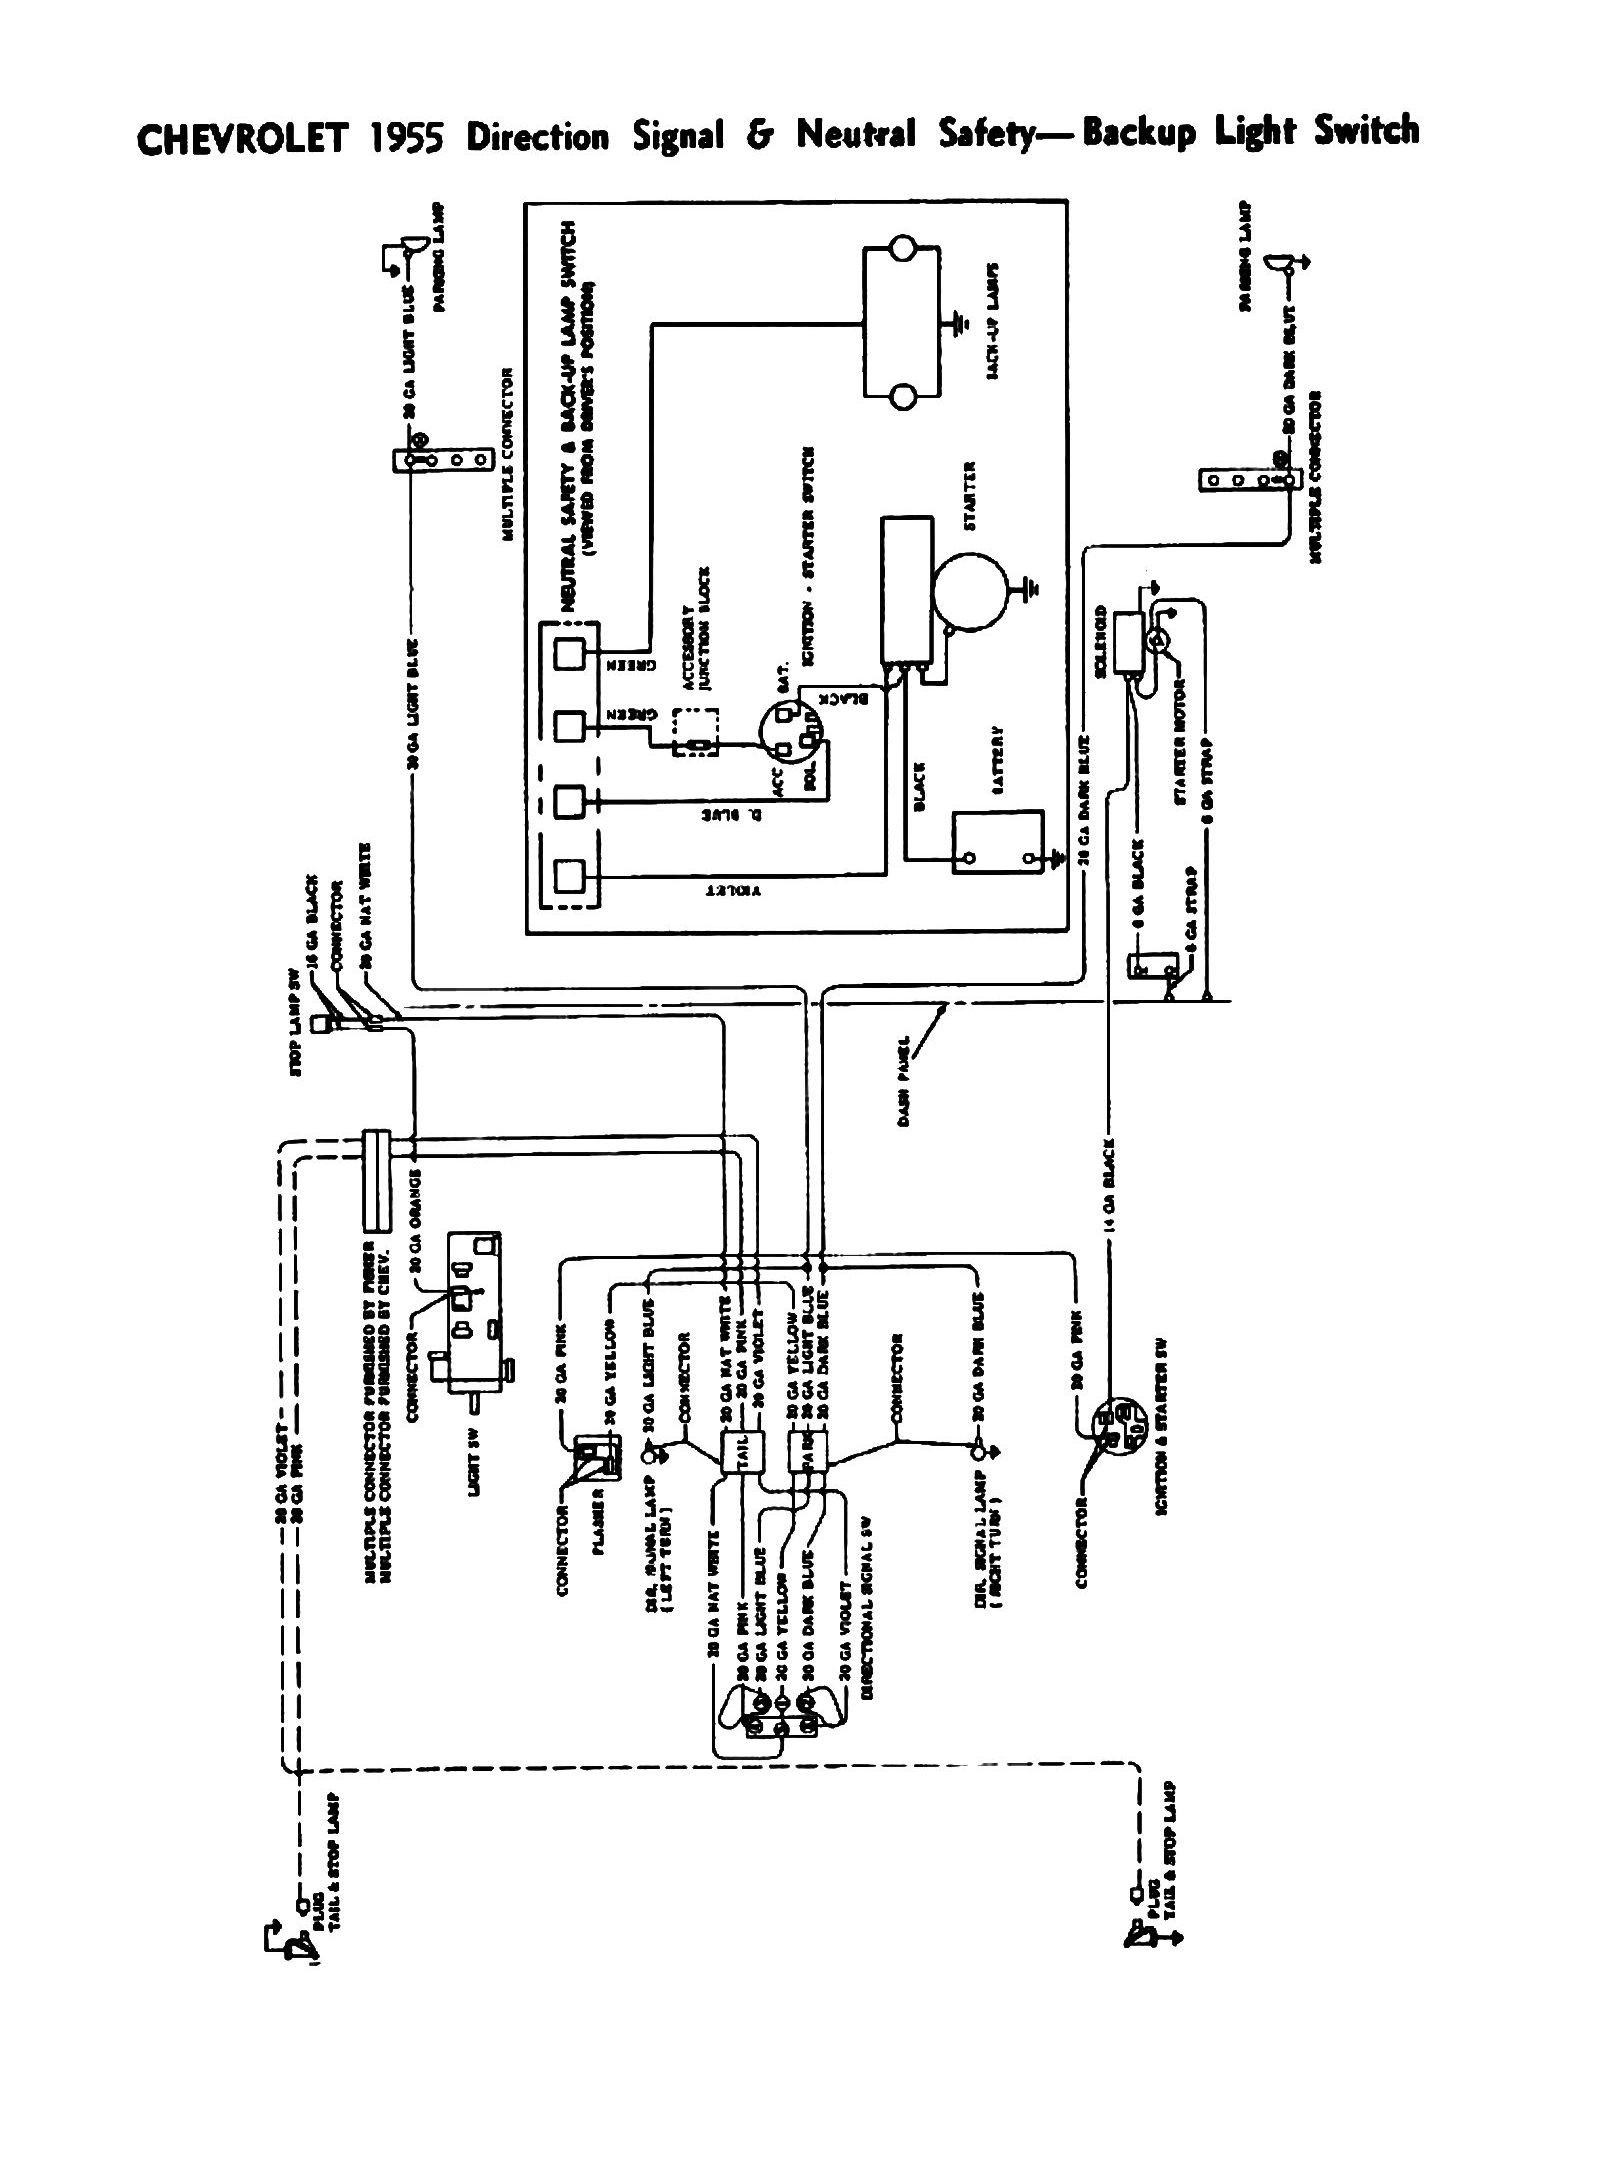 Ford Fairlane Wiring Diagram Ford Wiring Diagram Images